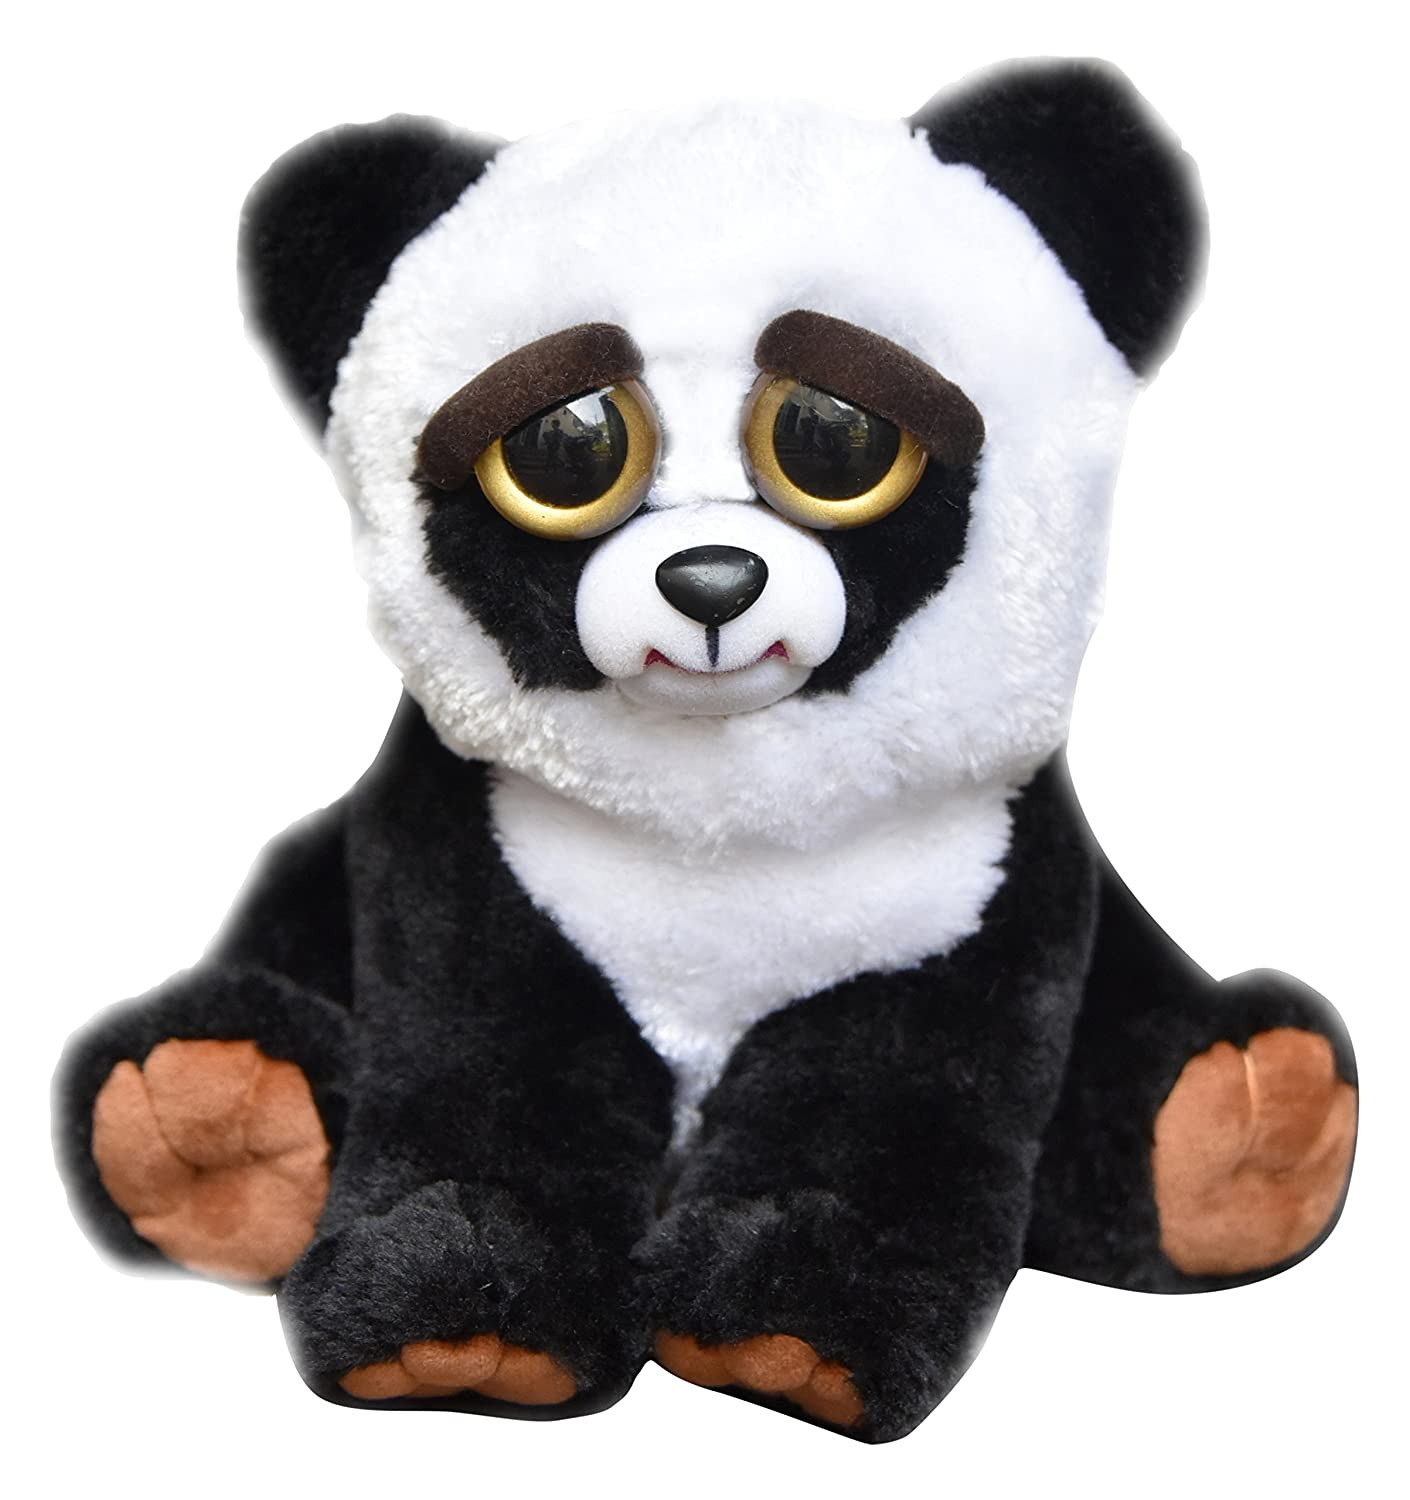 Feisty Pets Sir Growls-A-Lot FP-BEAR - Oso de peluche: Amazon.es: Juguetes y juegos